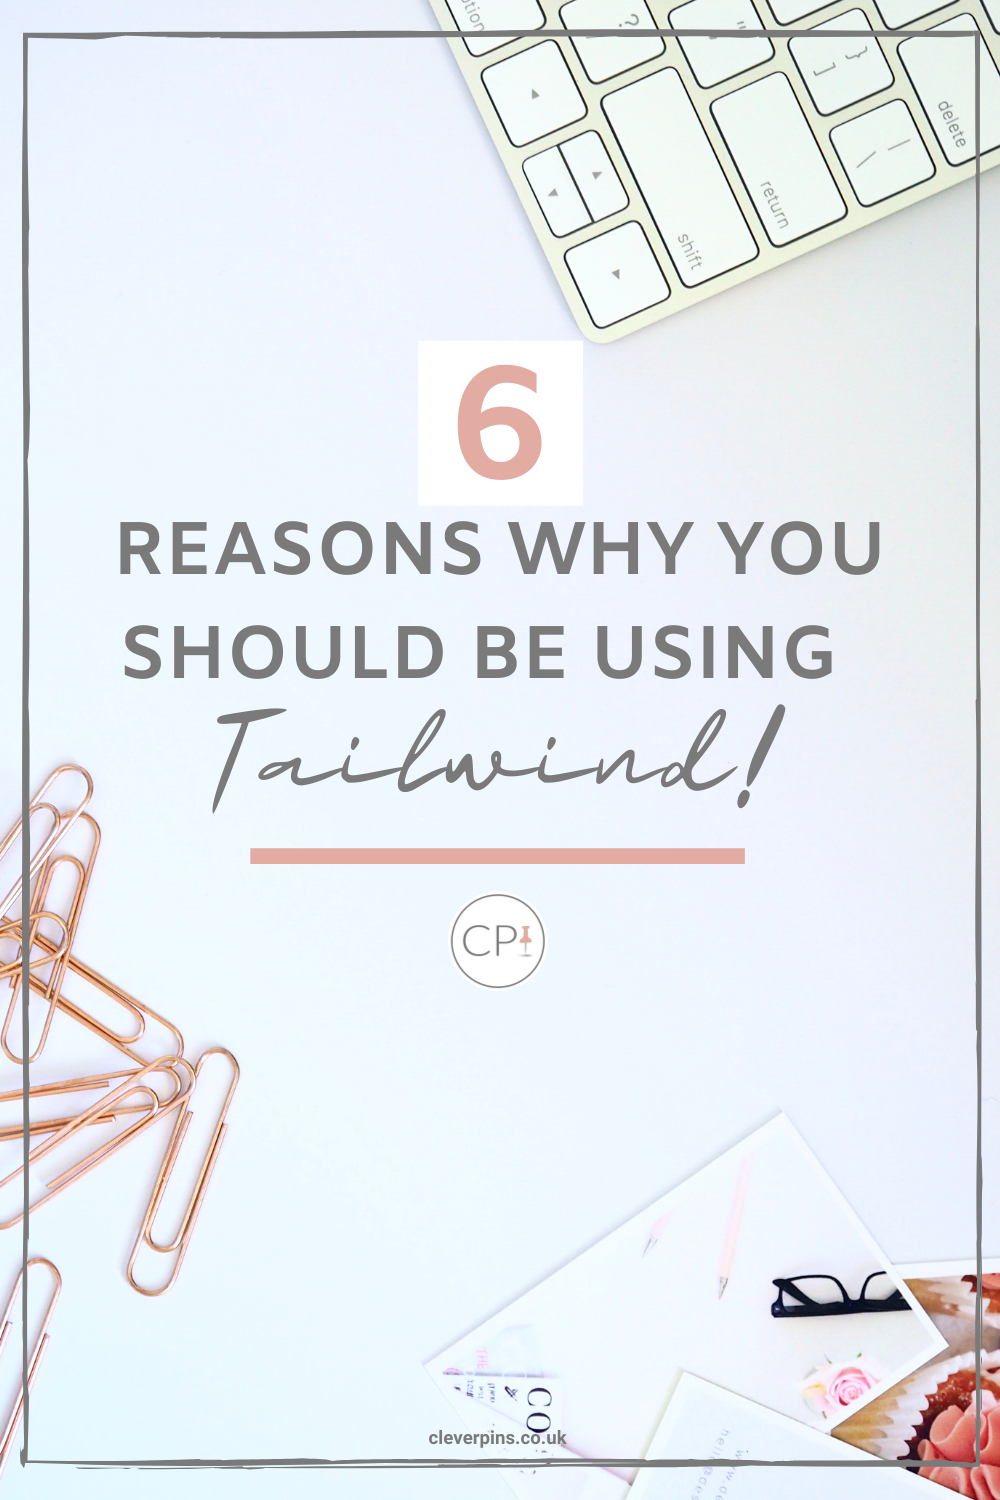 Pin template with text '6 reasons why you should be using tailwind!' on a flatlay of paper clips, keyboard and postcards in pink tones.